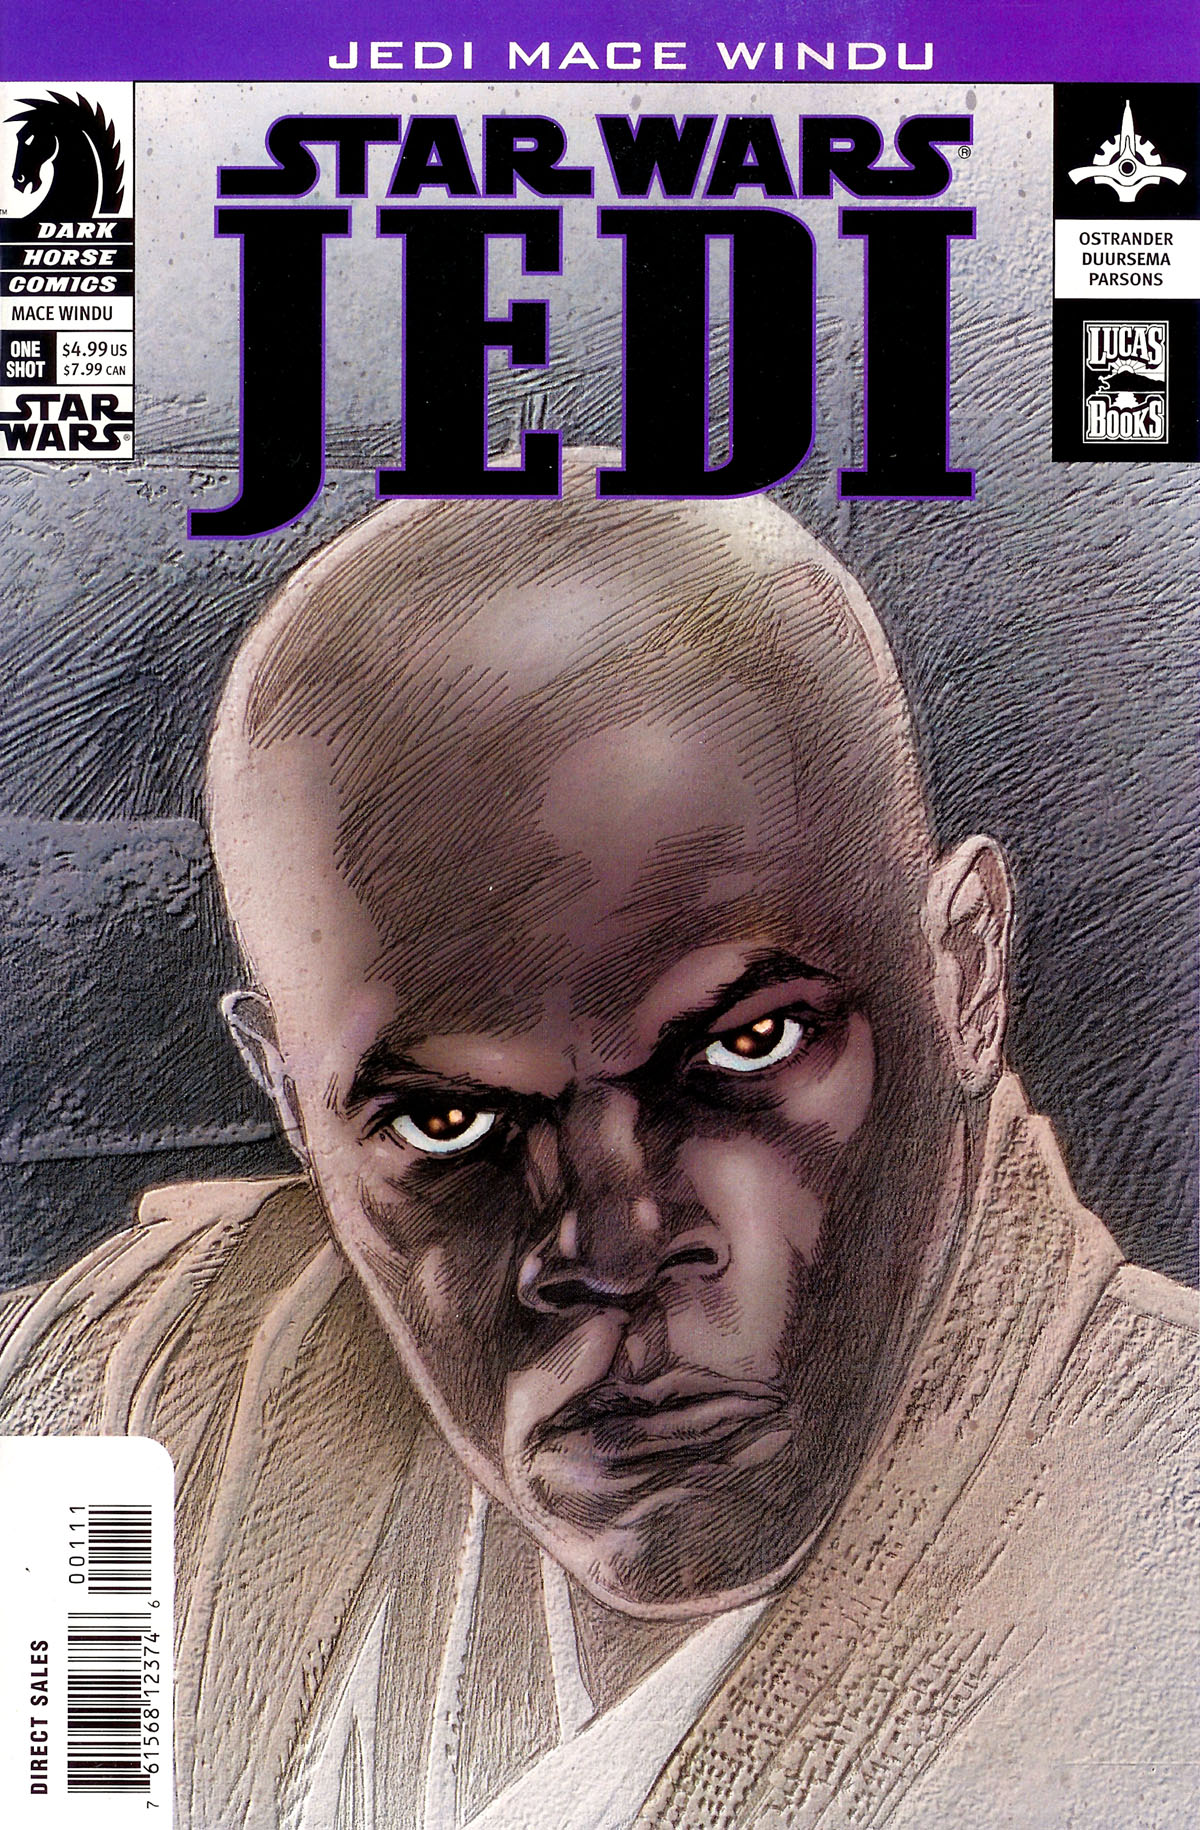 Swjed1cover.jpg